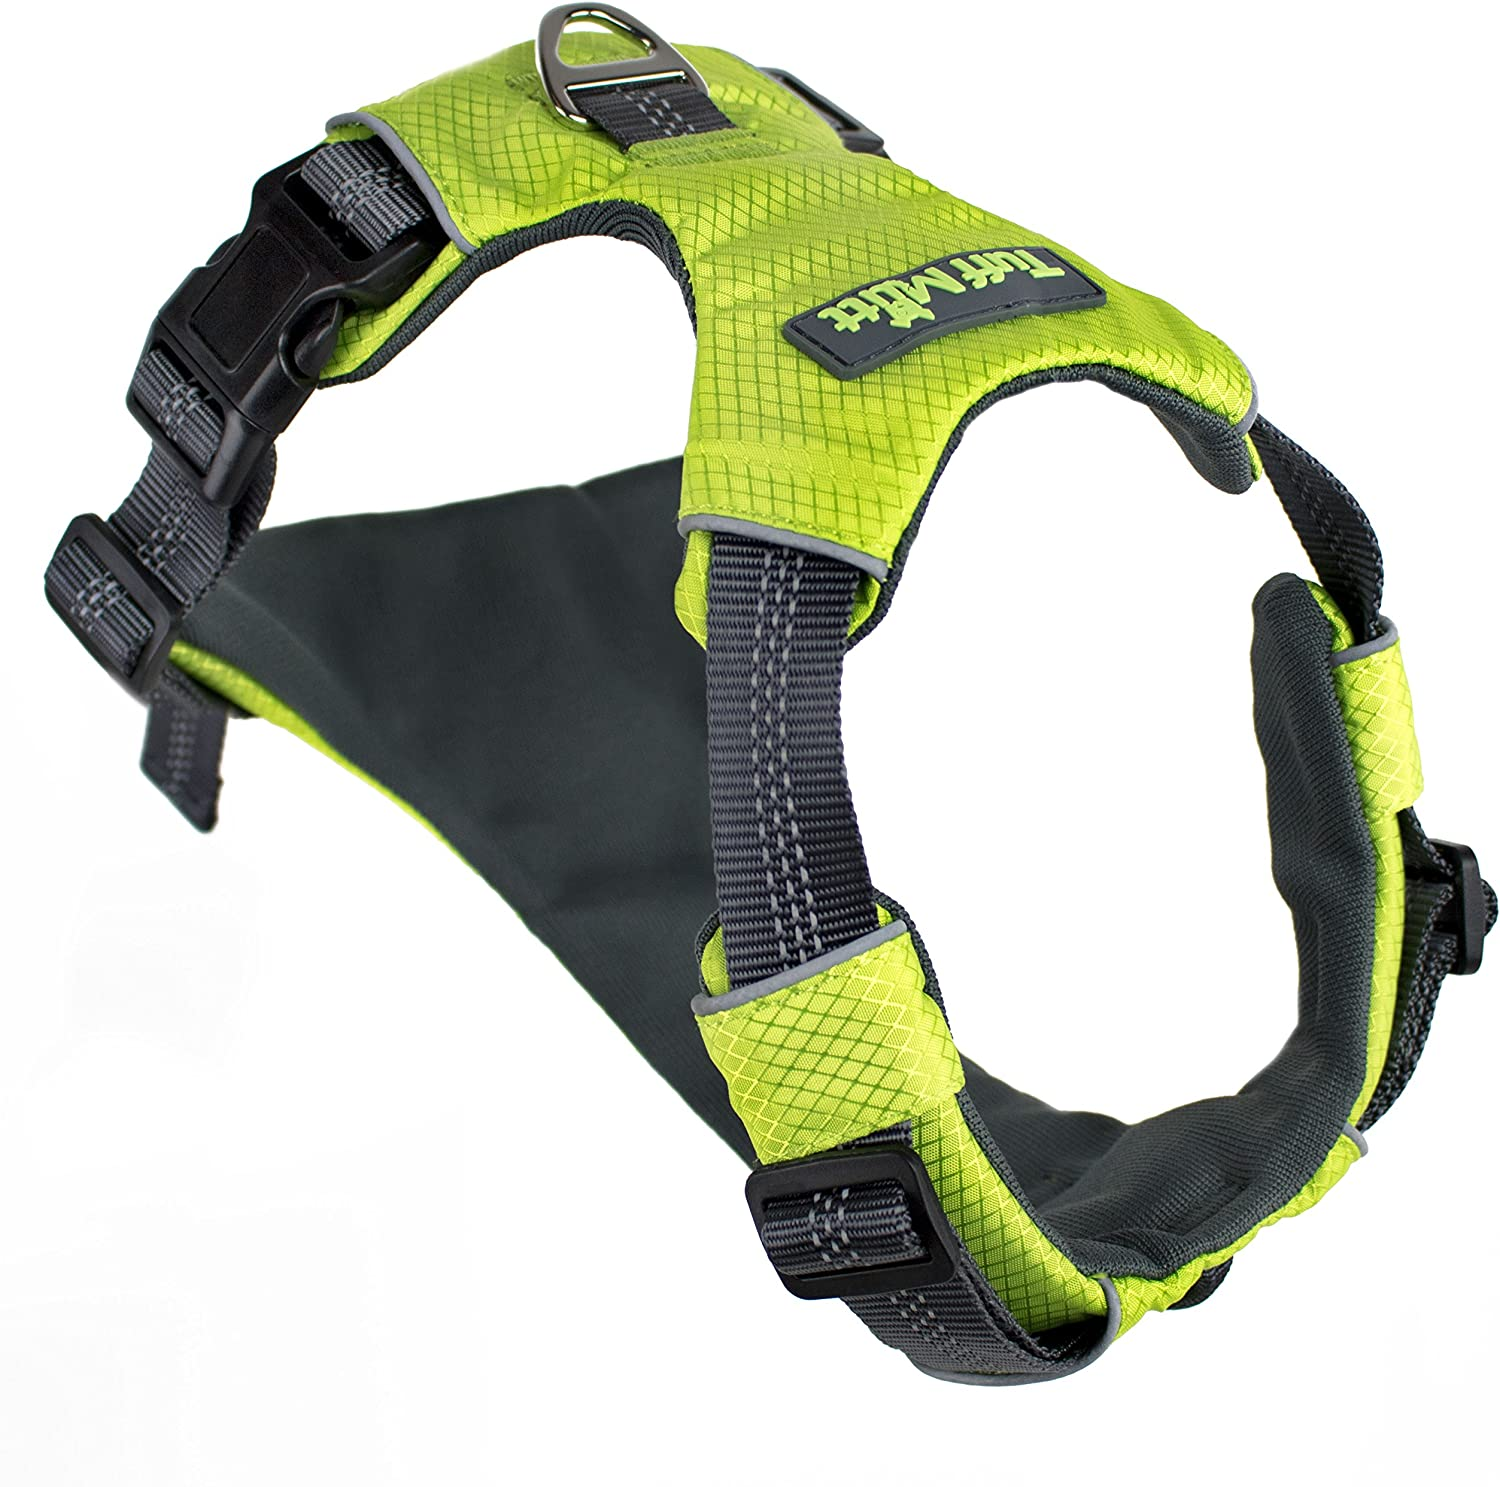 Tuff Mutt Easy On/Easy Off Dog Harness